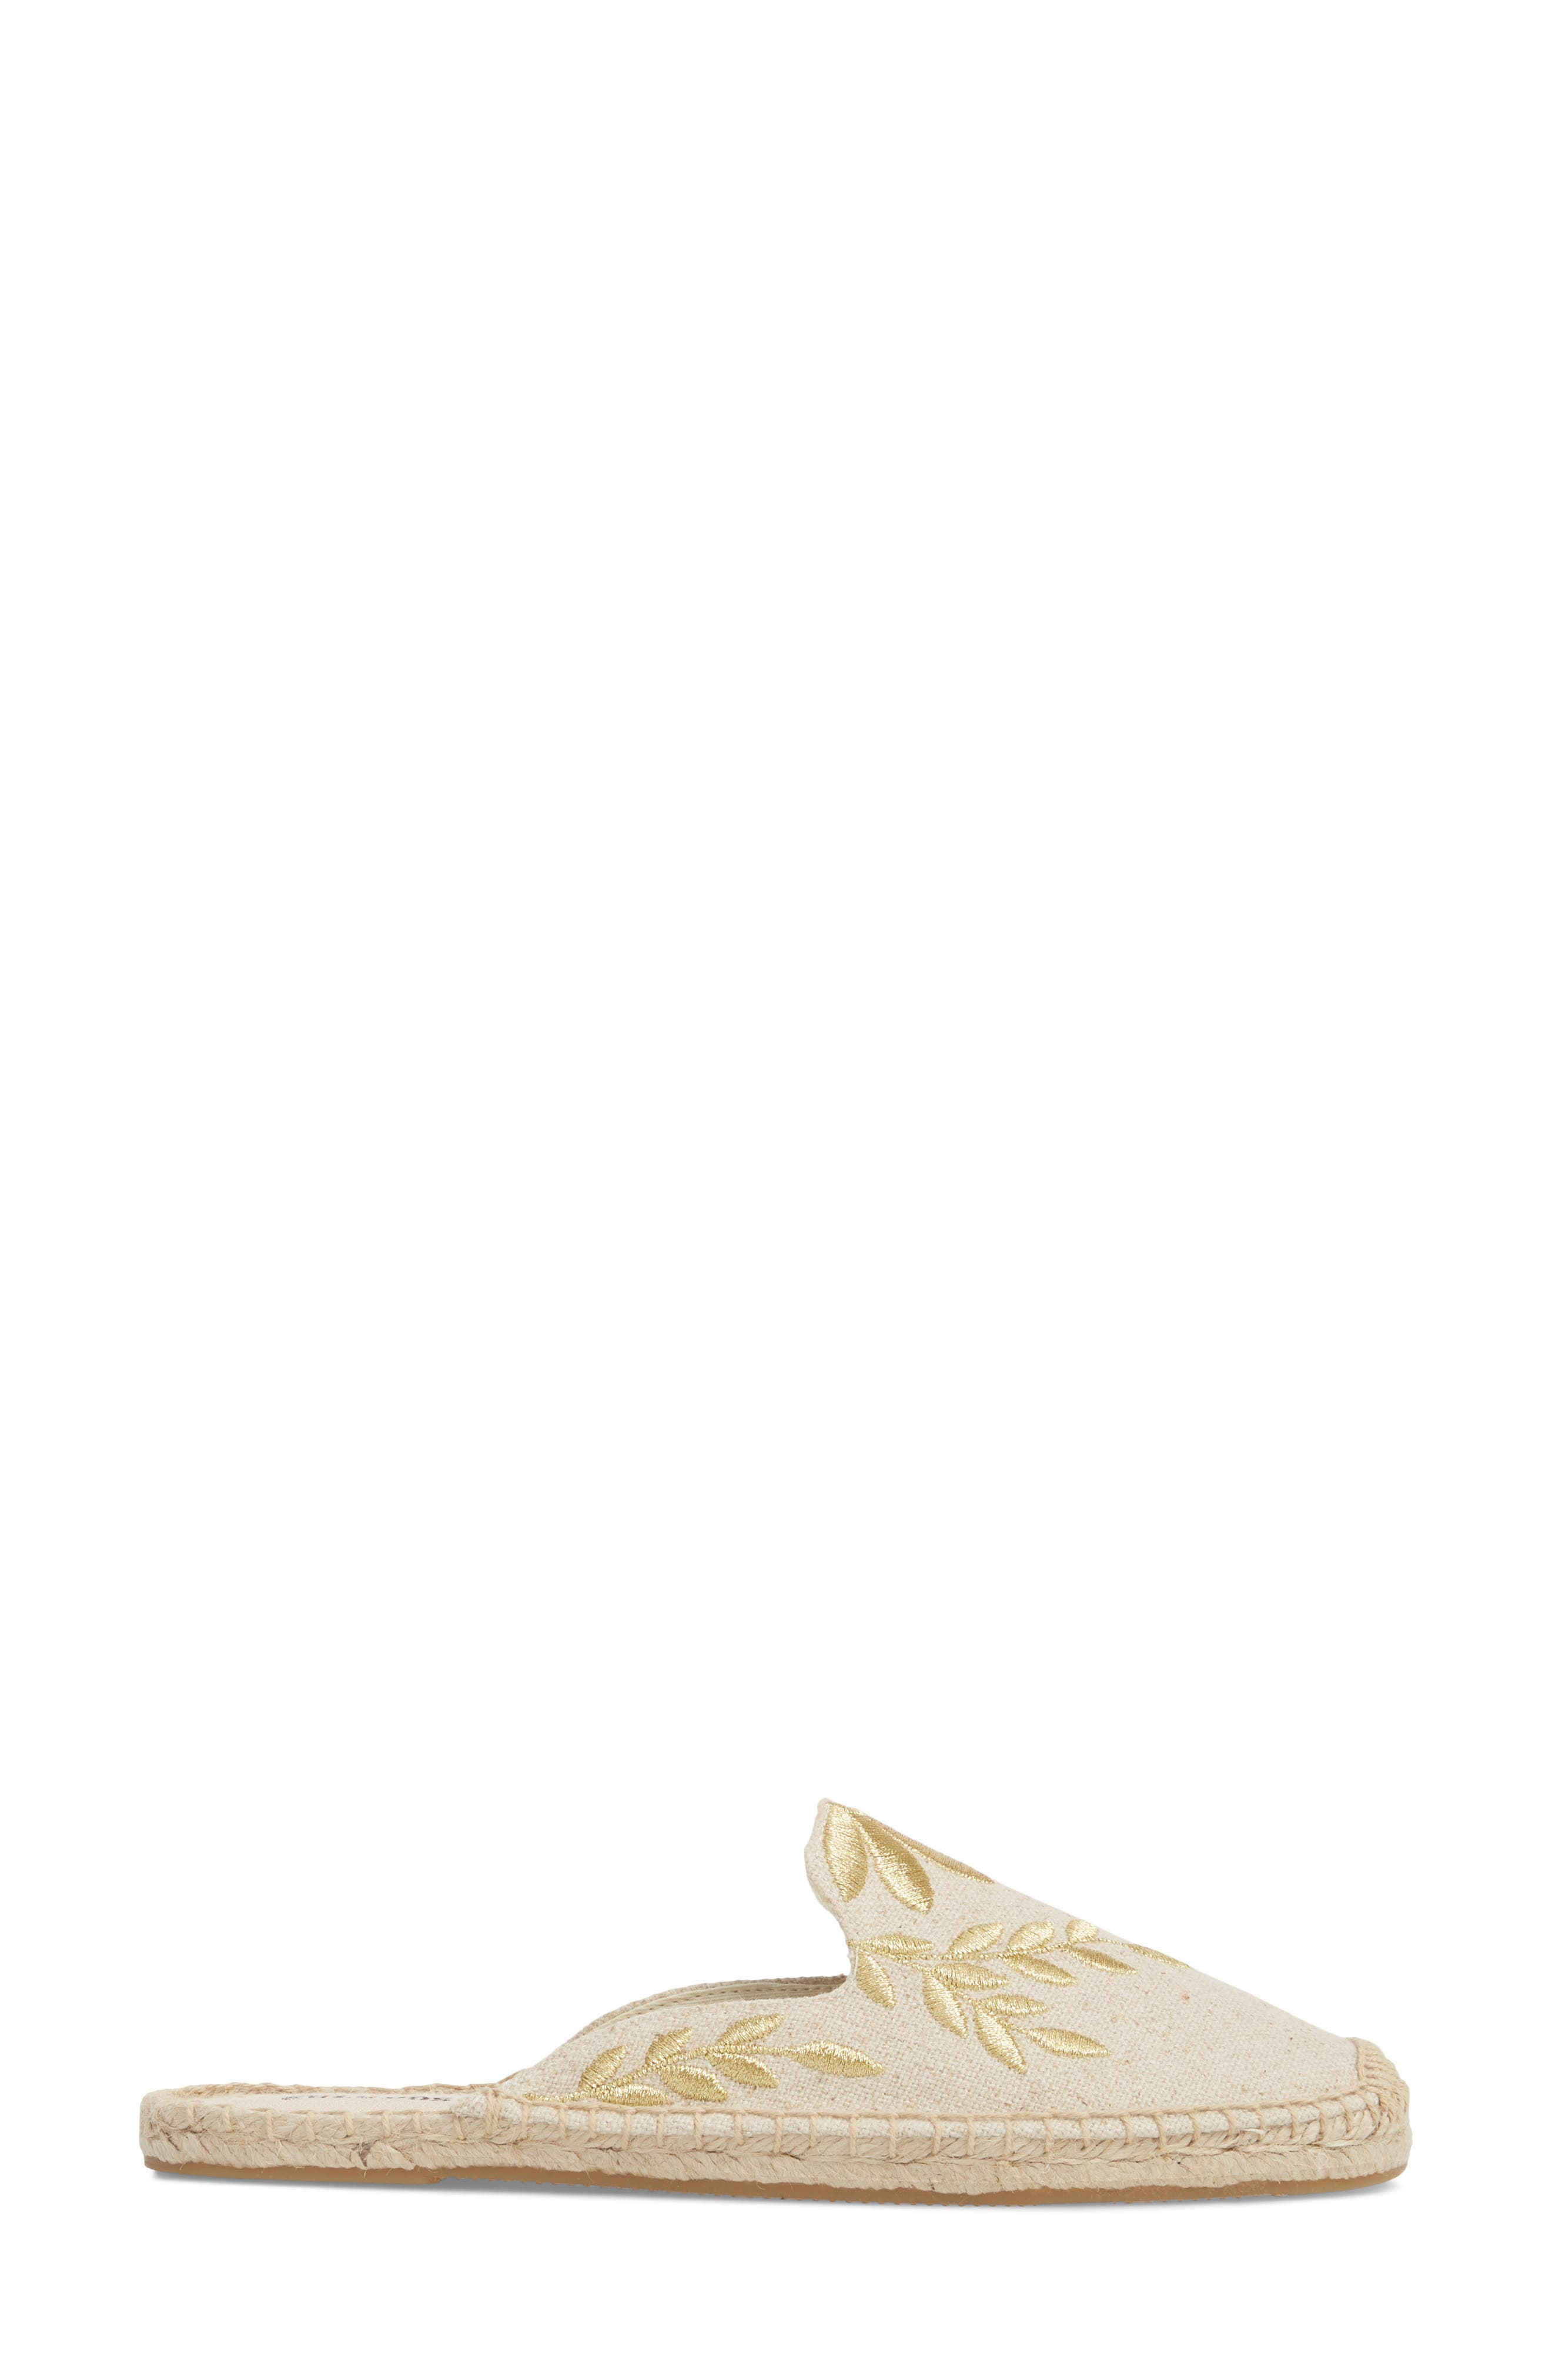 Leaf Embroidered Loafer Mule,                             Alternate thumbnail 3, color,                             Sand/ Metallic